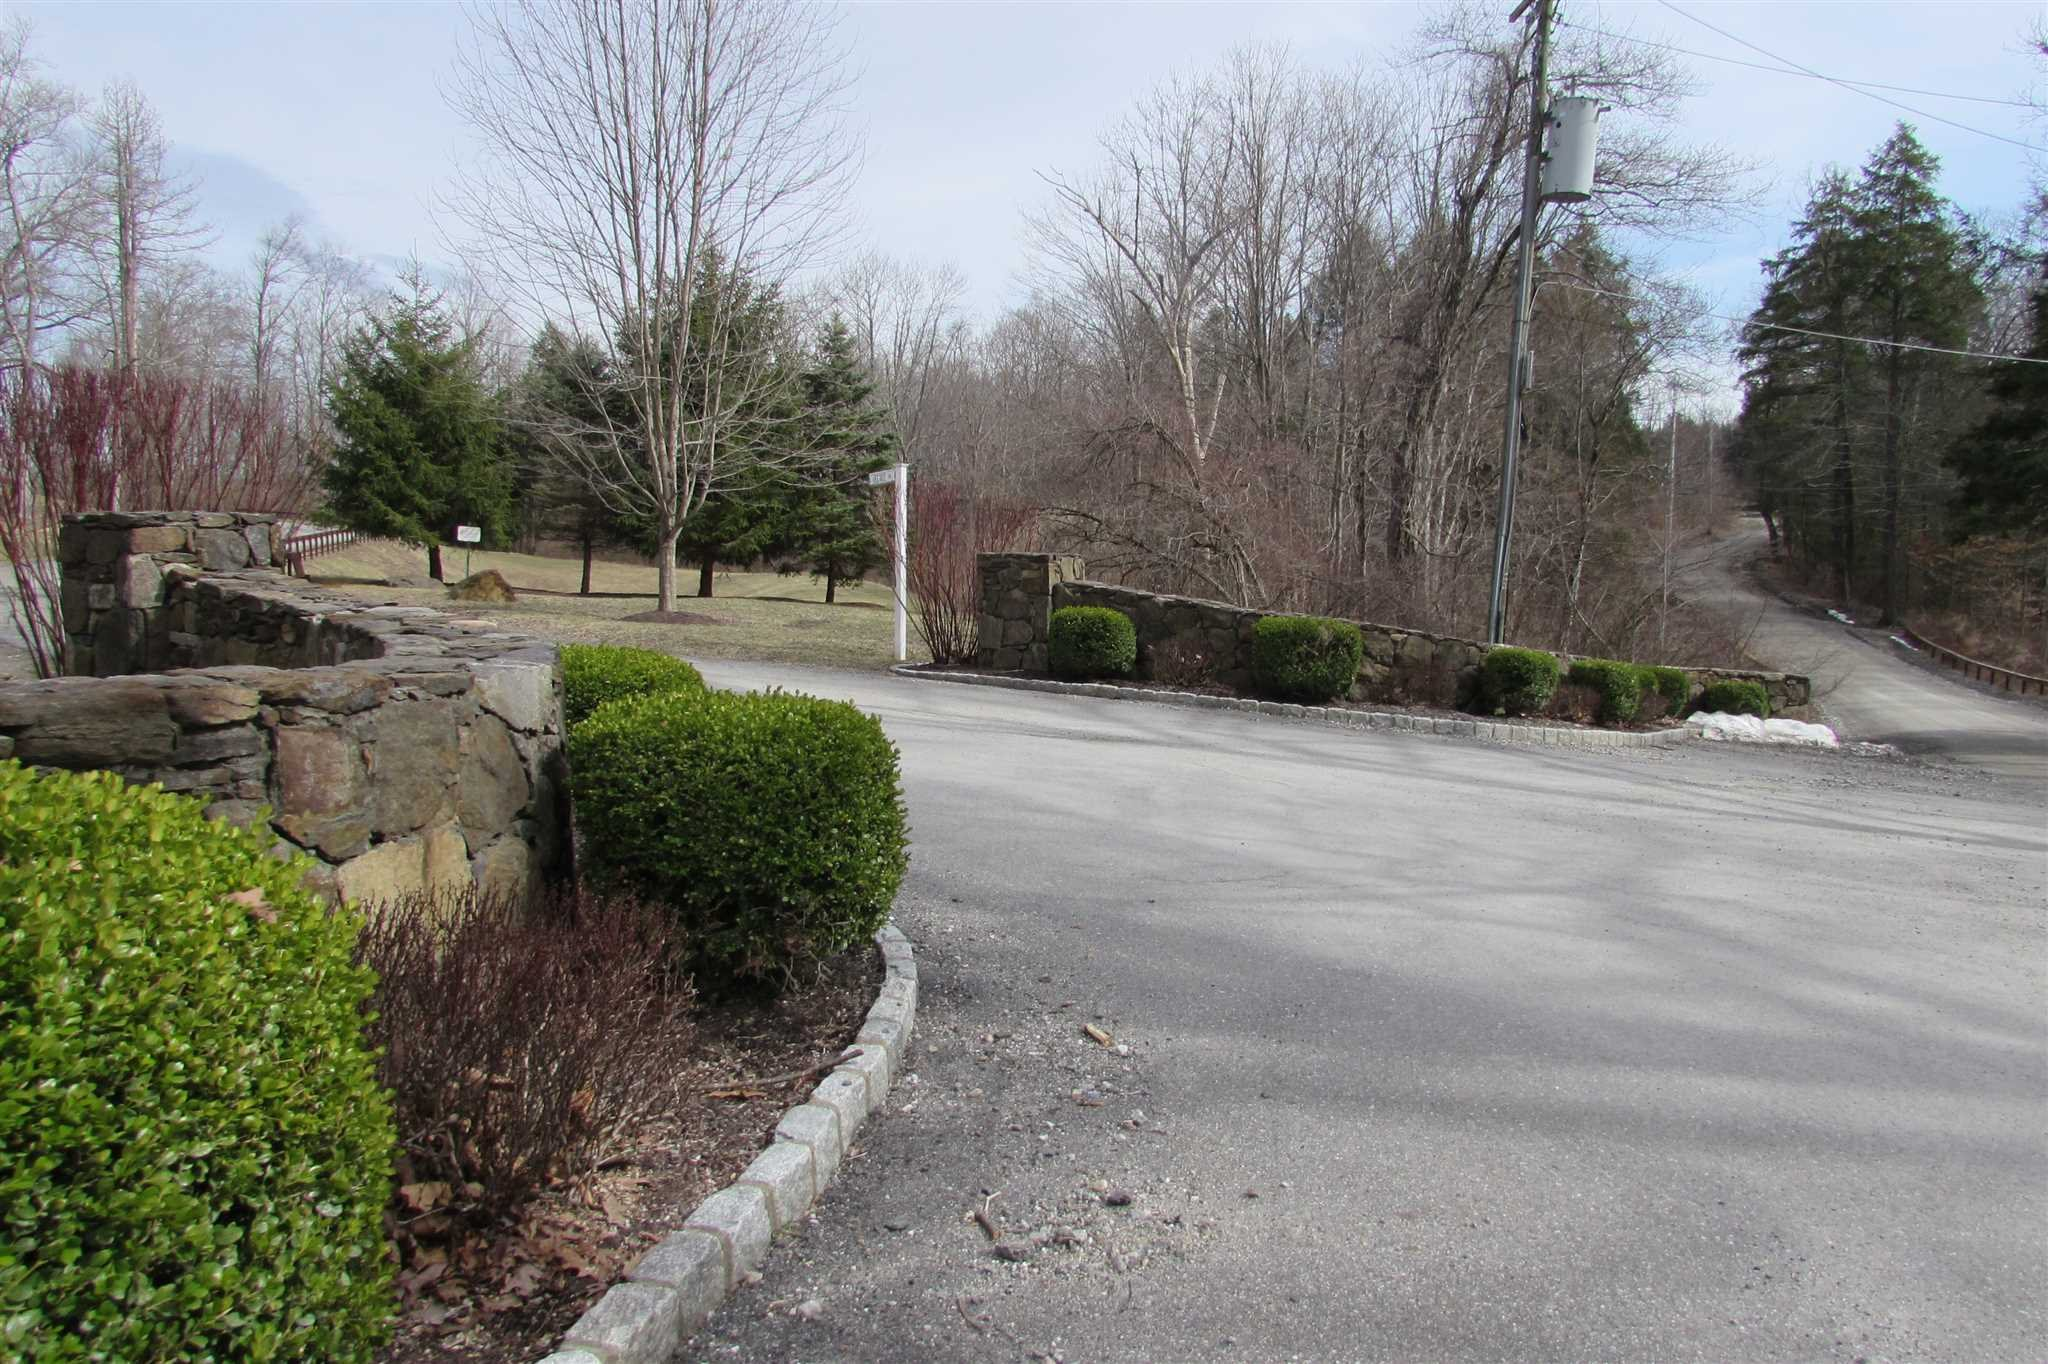 Land for Sale at 10 EAST MEADOW 10 EAST MEADOW Pawling, New York 12564 United States